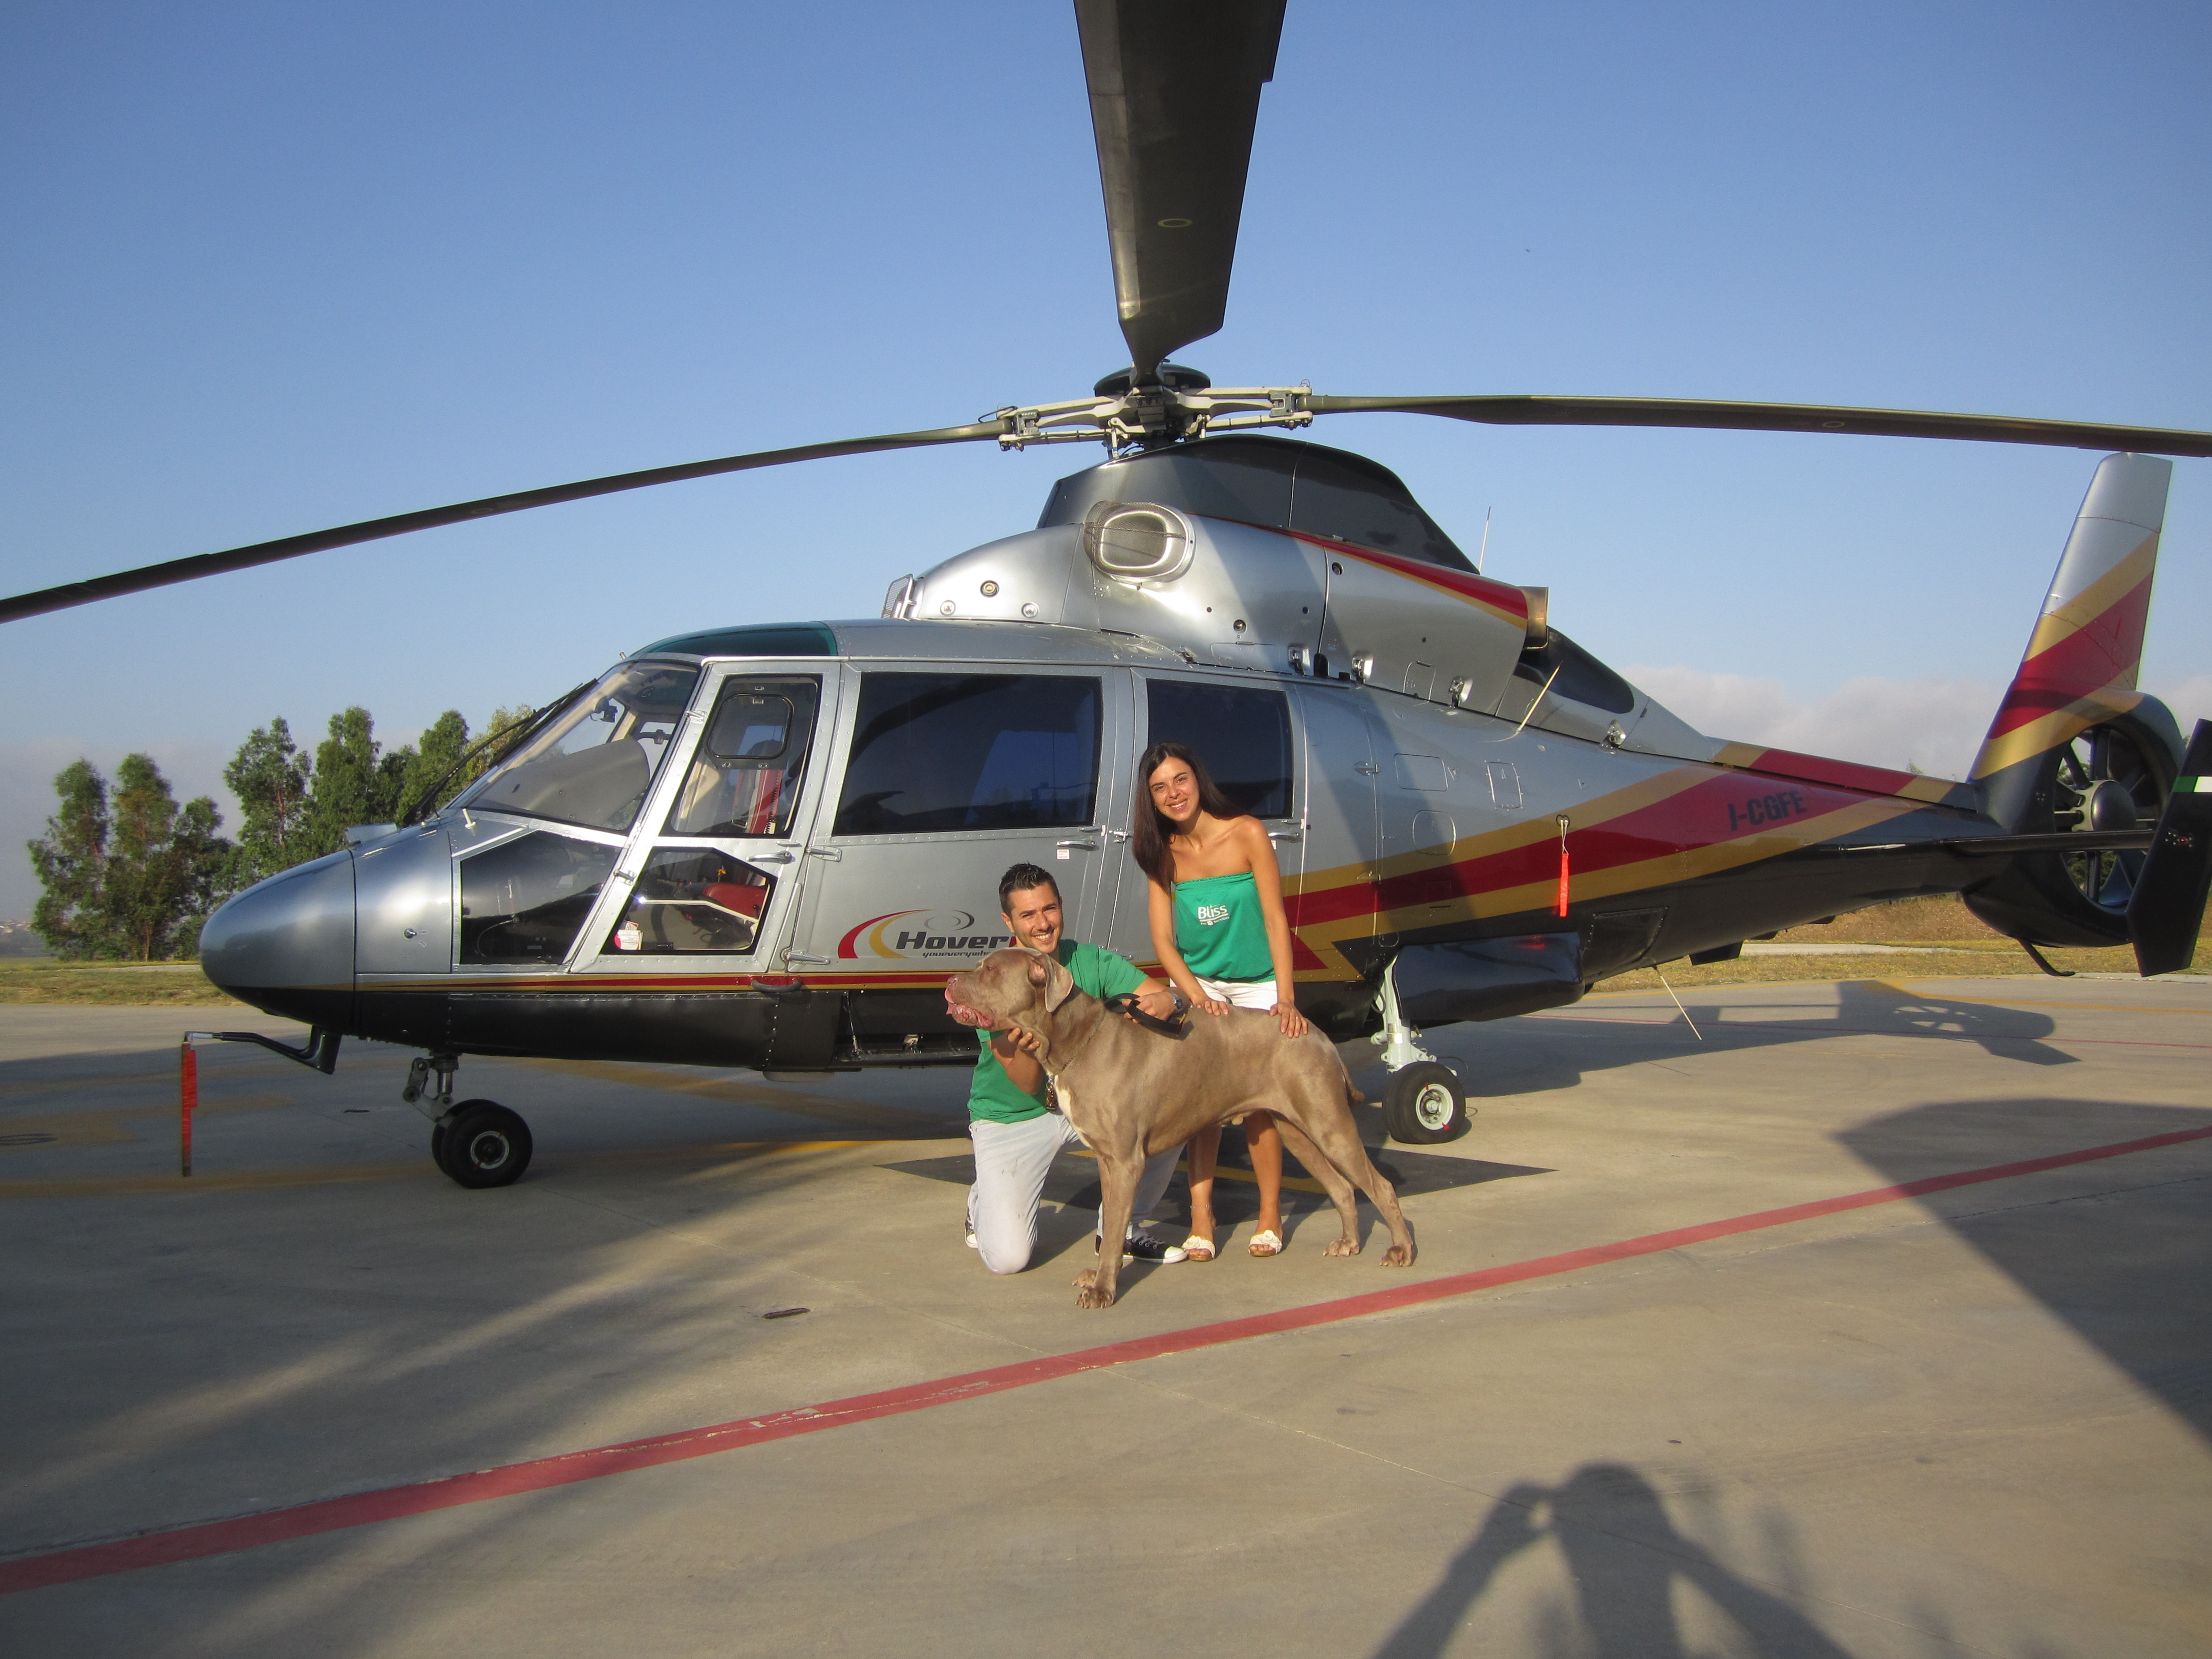 Bliss Pet Expert helicopter